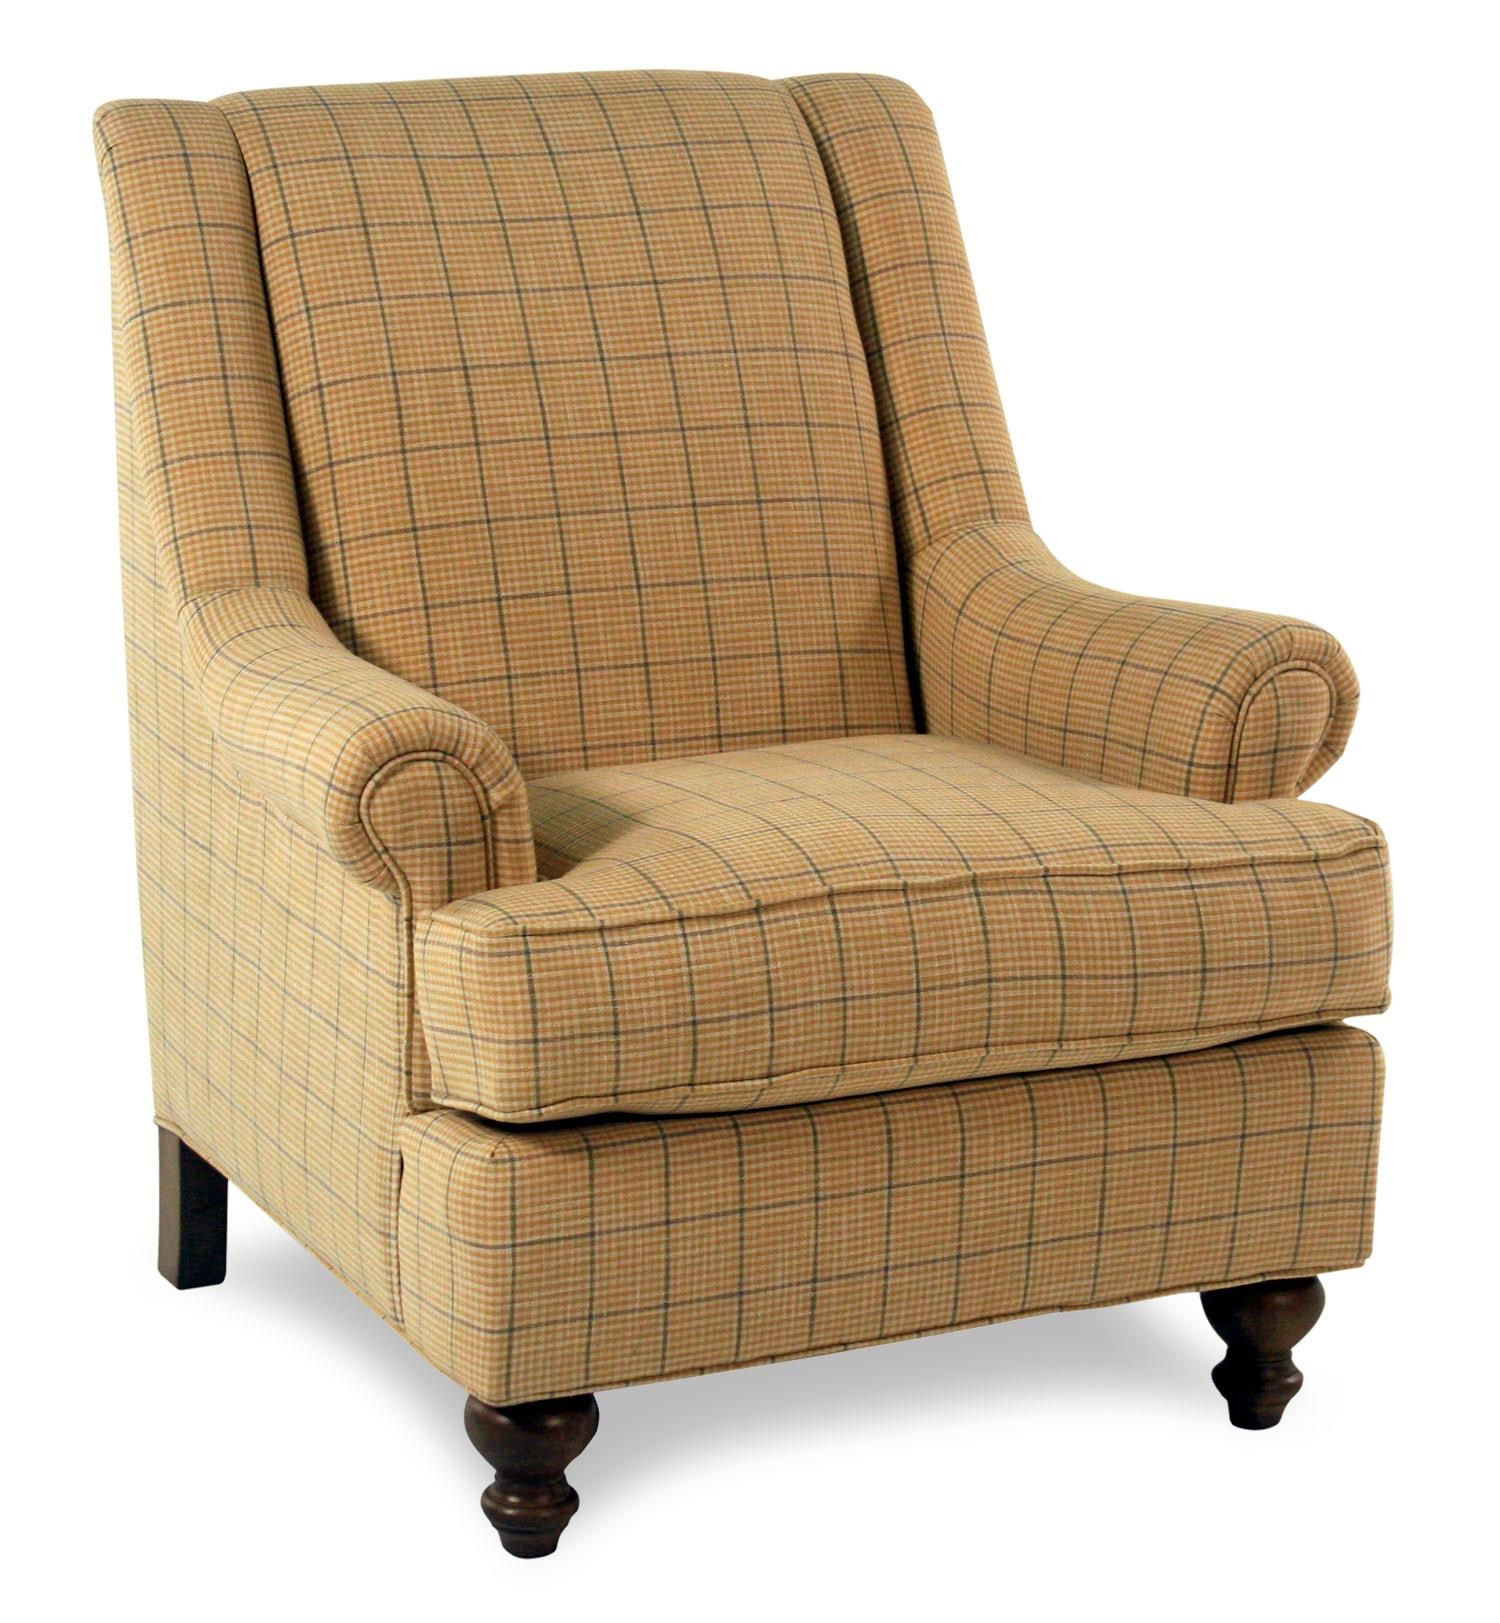 Cozy Life Accent Chairs Contessa Accent Chair - Item Number: 057510-YOKE02